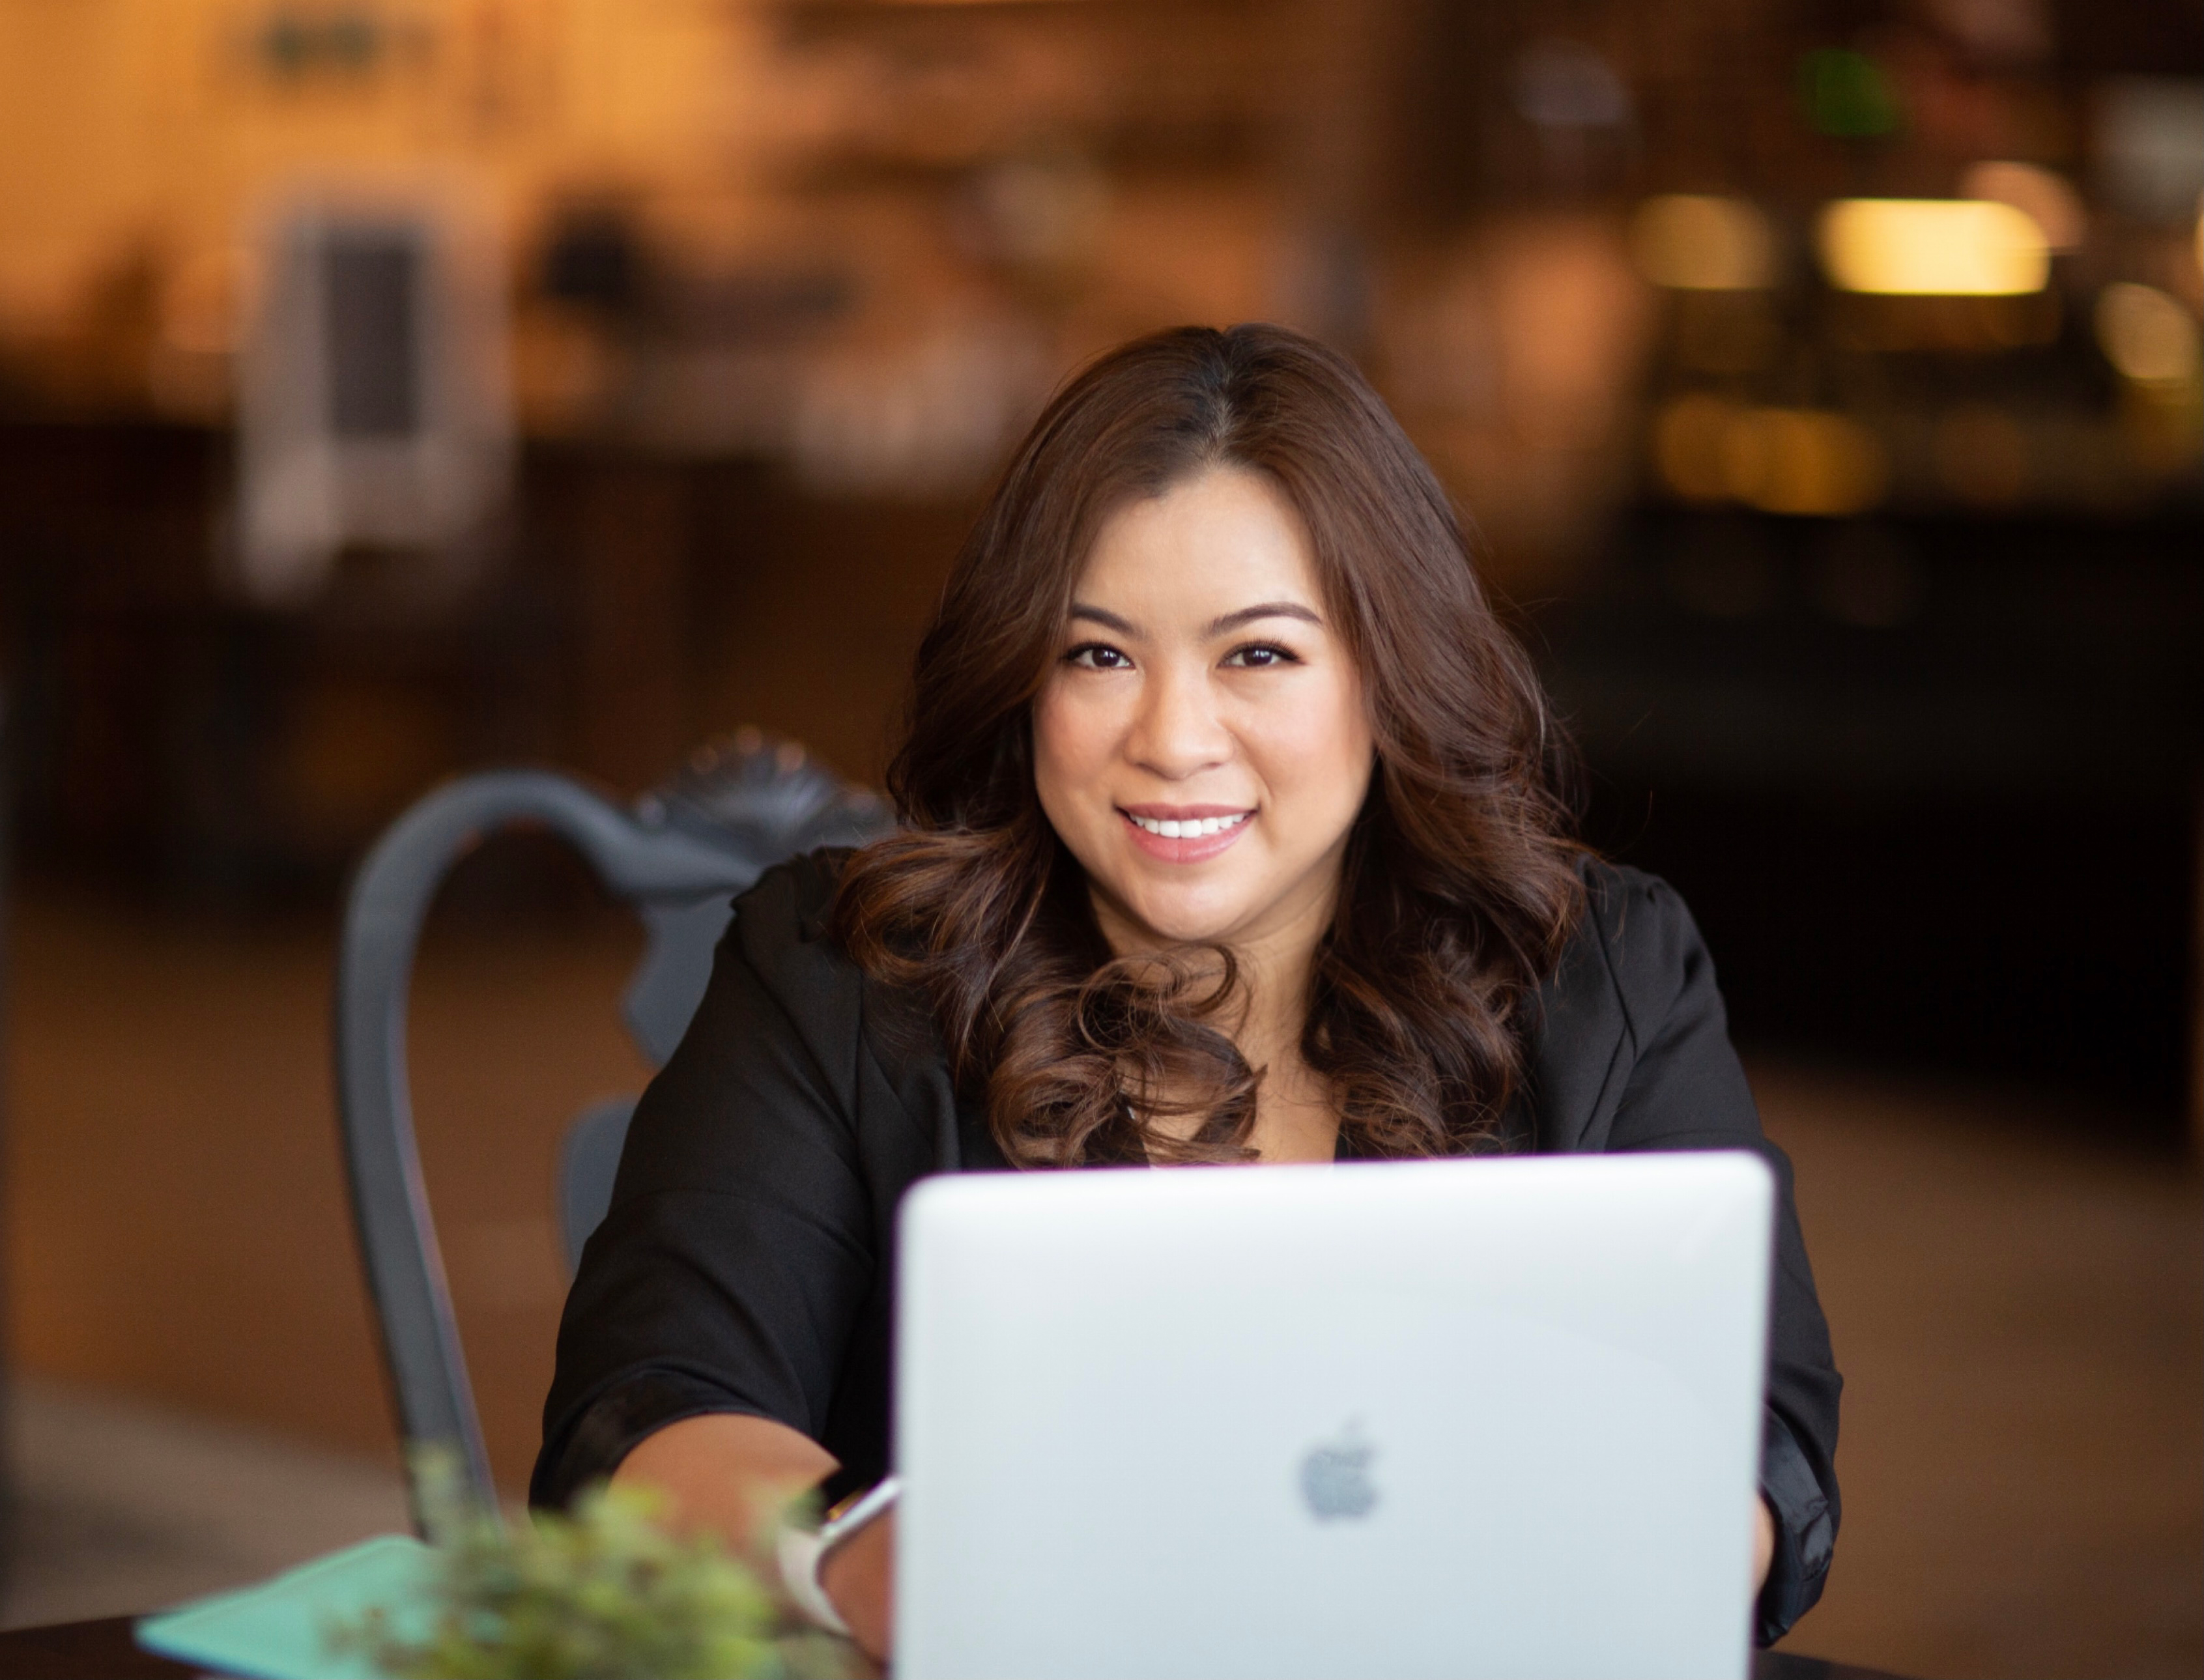 Coach Jen Dinh Helps Women Reset Their Lives and Become Their Own Heroes